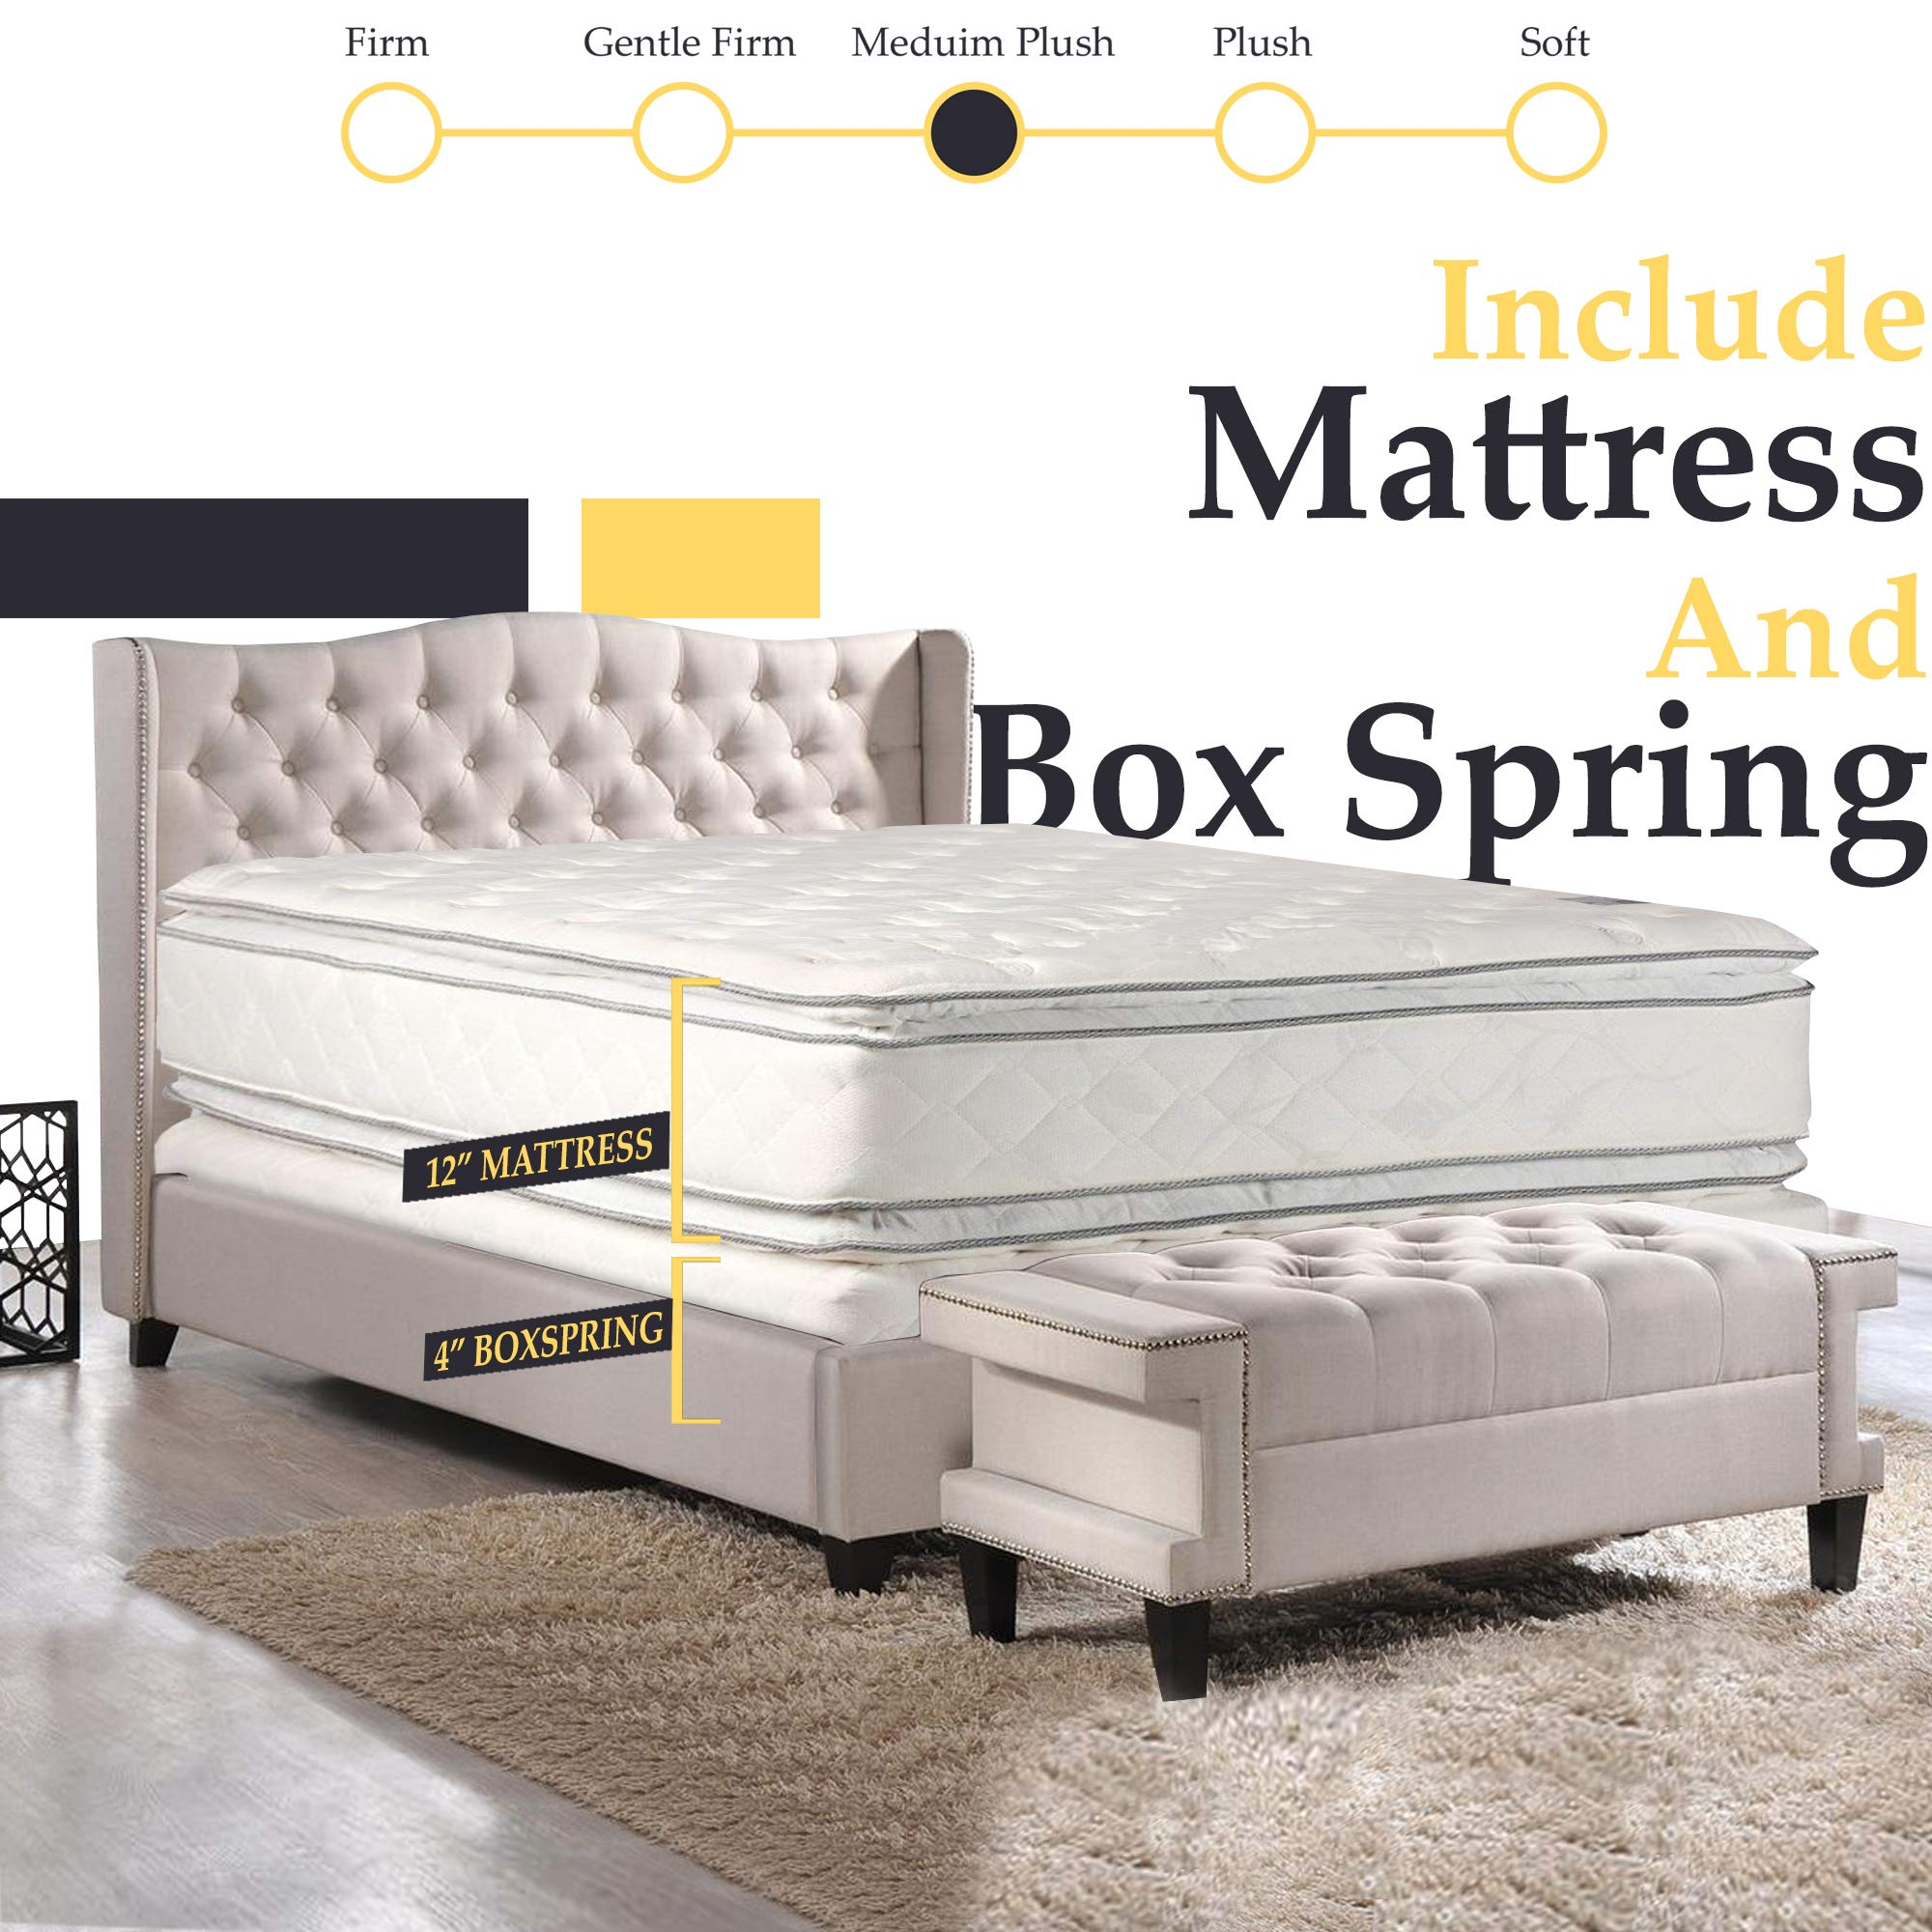 Double sided Pillowtop Innerspring Fully Assembled Mattress And 4-Inch Wood Box Spring/Foundation Set, Good For The Back by Nutan